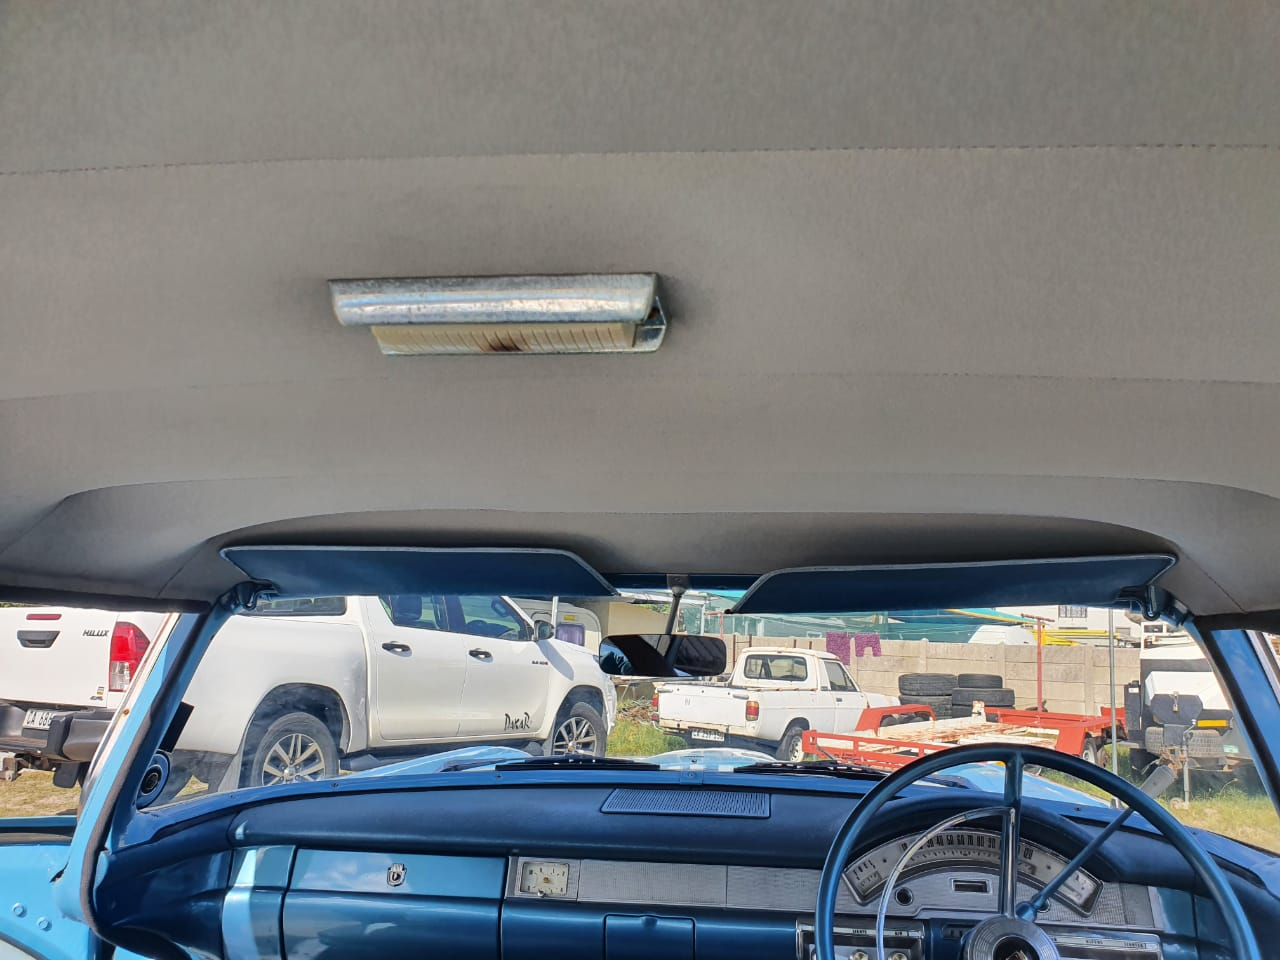 1958 ford fairlane good condition with papers.v8 with jaguar suspension